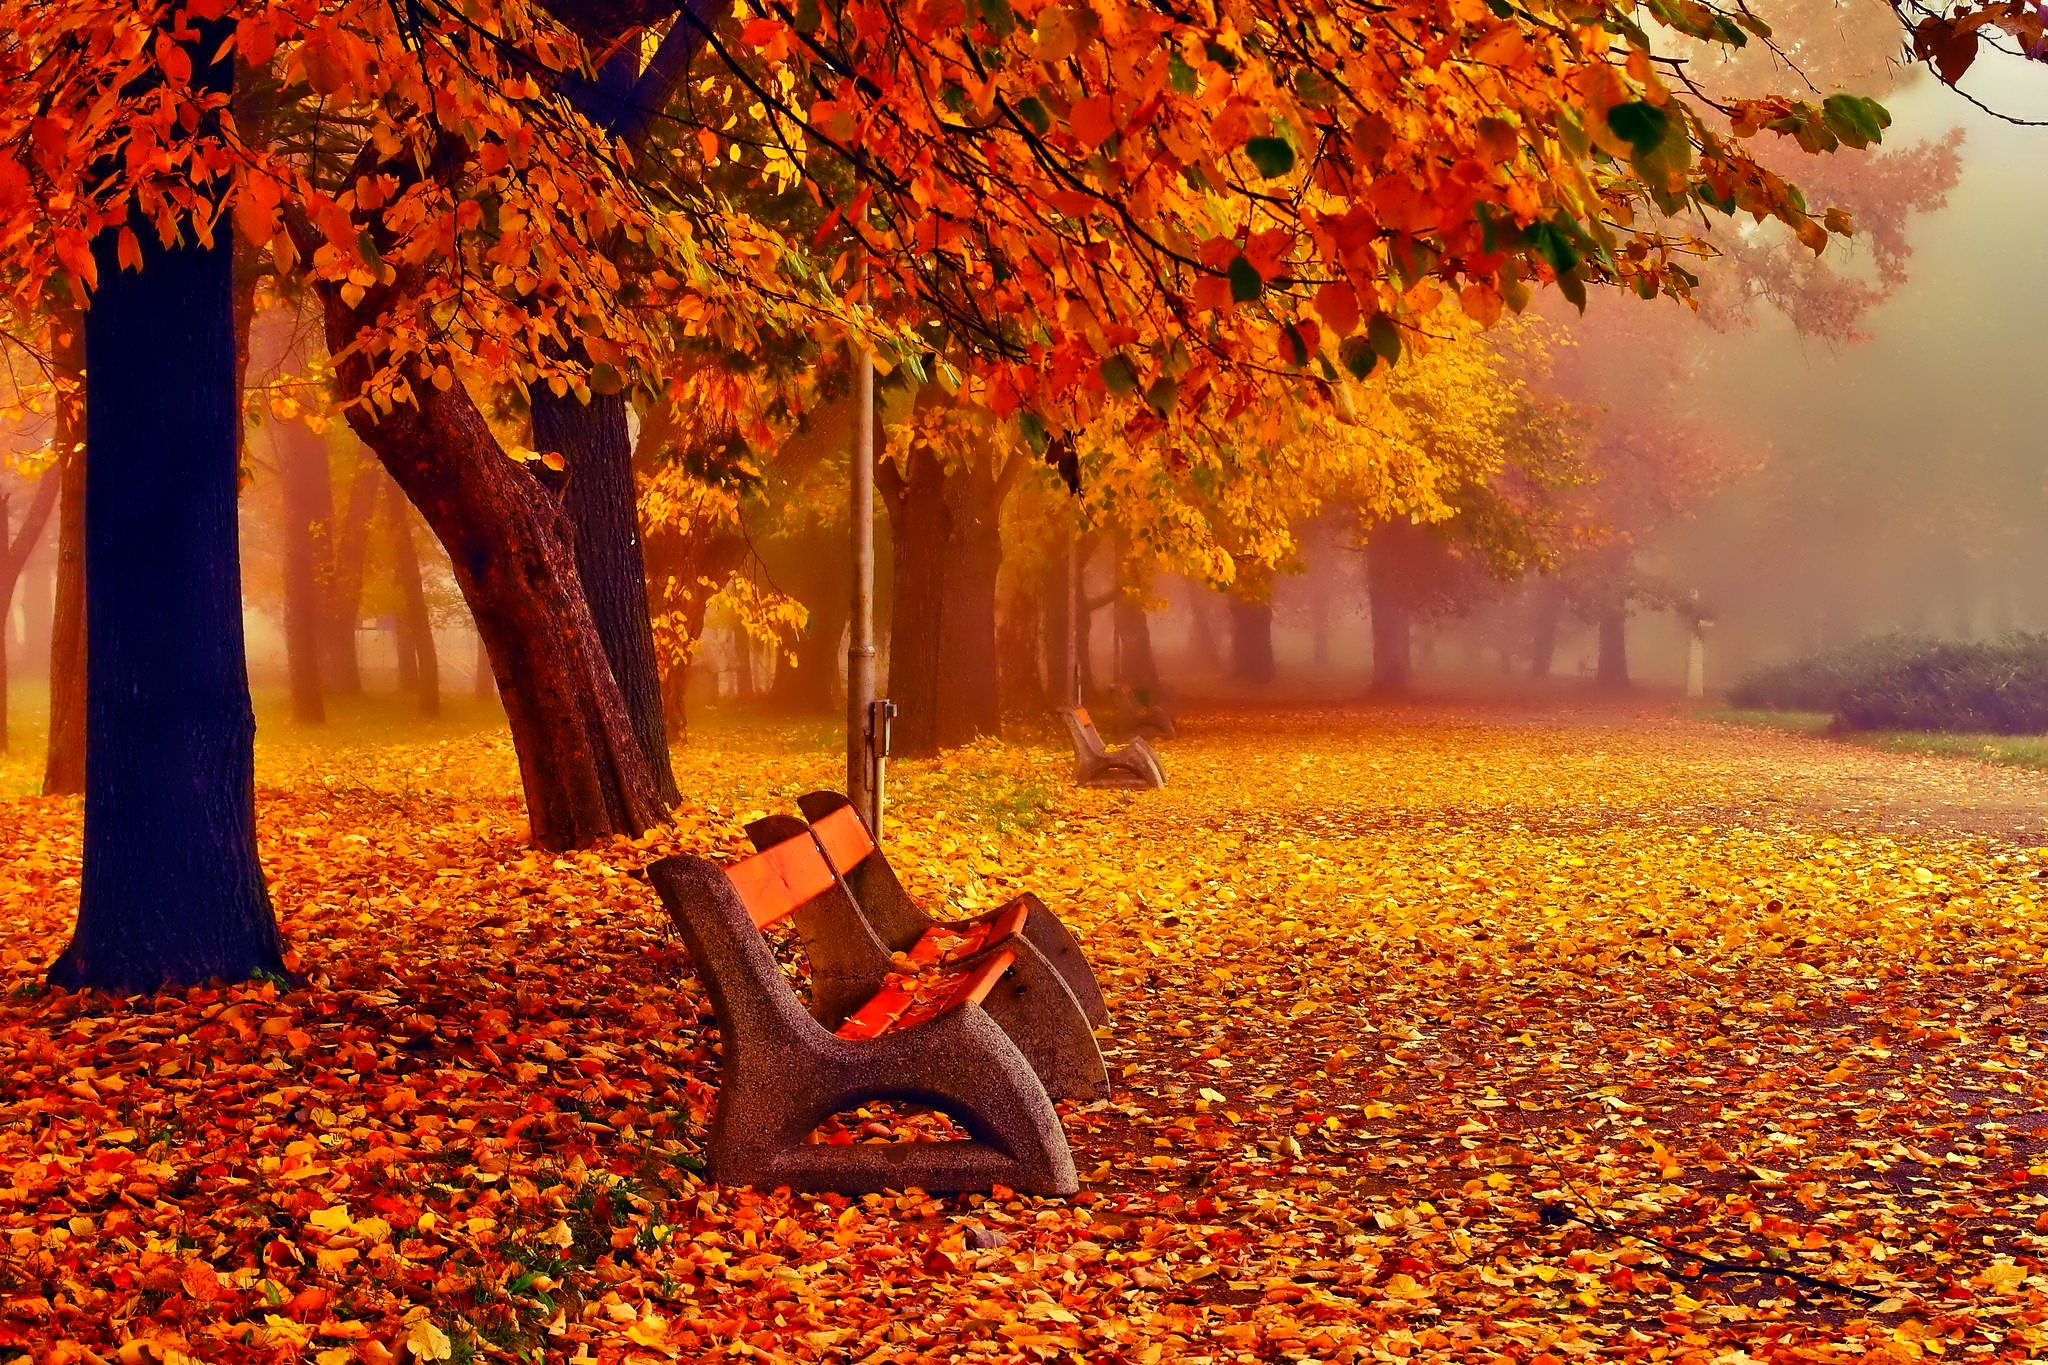 November Wallpaper 183 ① Download Free Awesome Hd Backgrounds